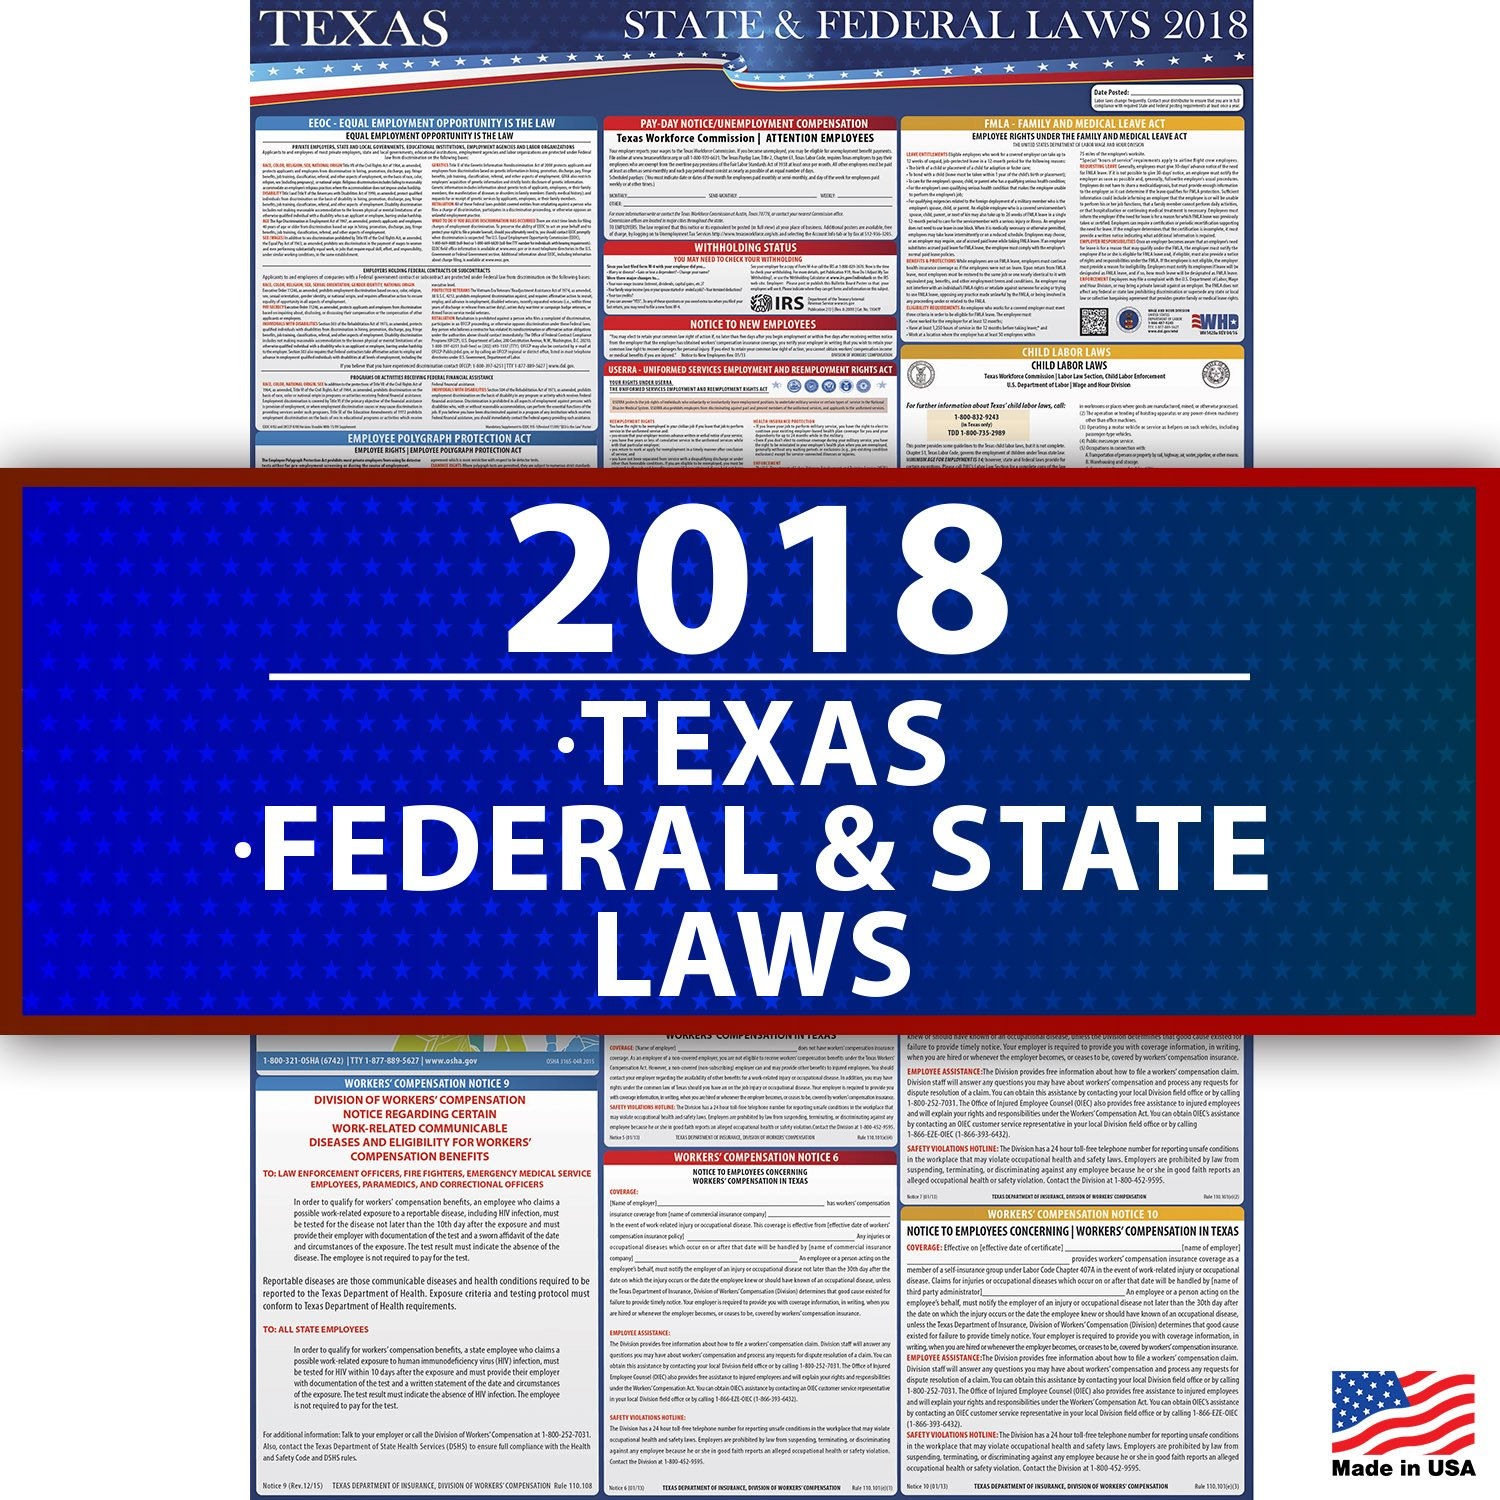 2018 Texas Employment Labor Law Poster - State & Federal Compliant - OSHA Compliant by Compliance Audit Center (Image #1)